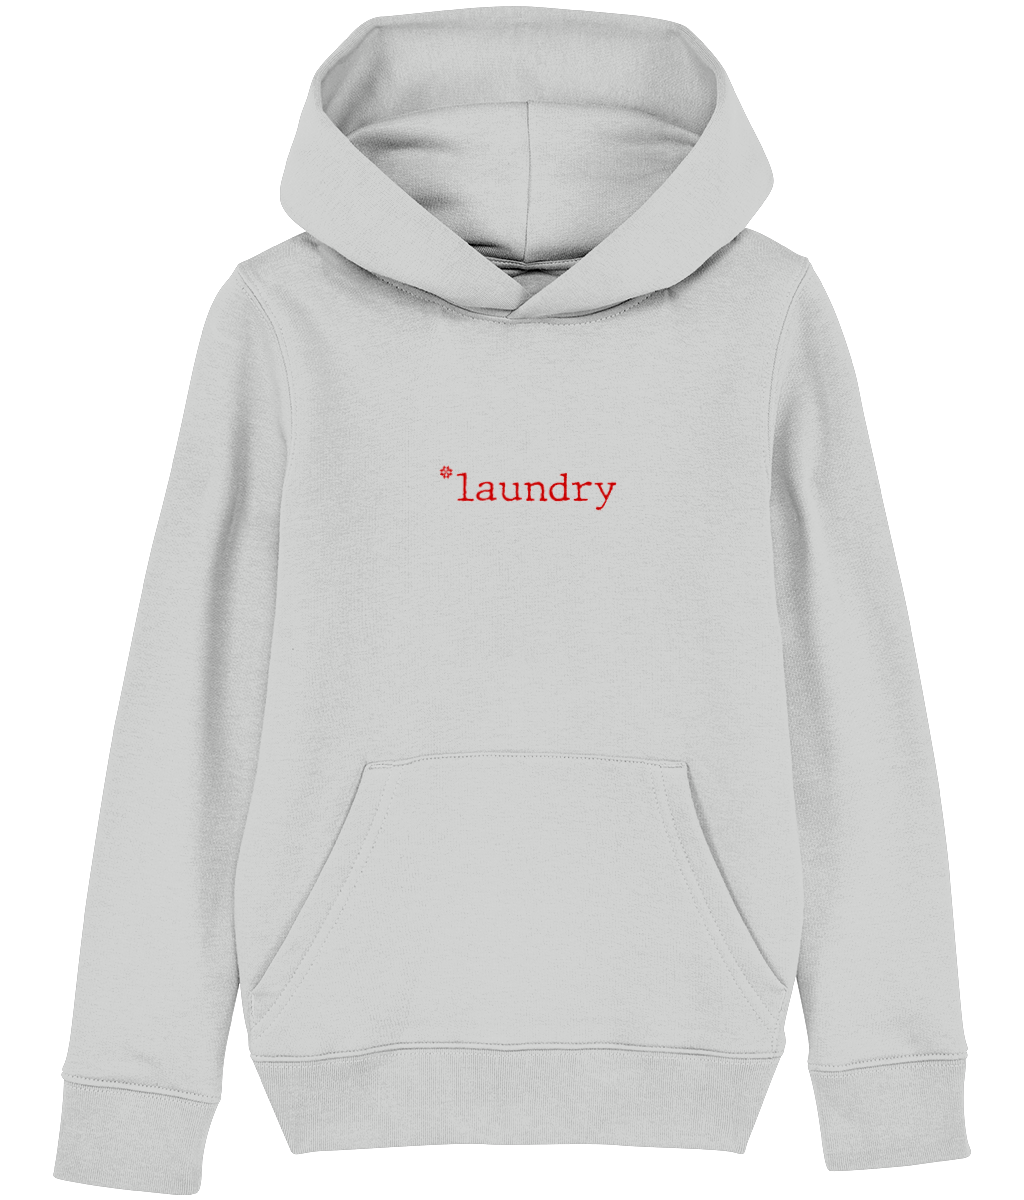 Kids Grey hoodie with laundry slogan in Red